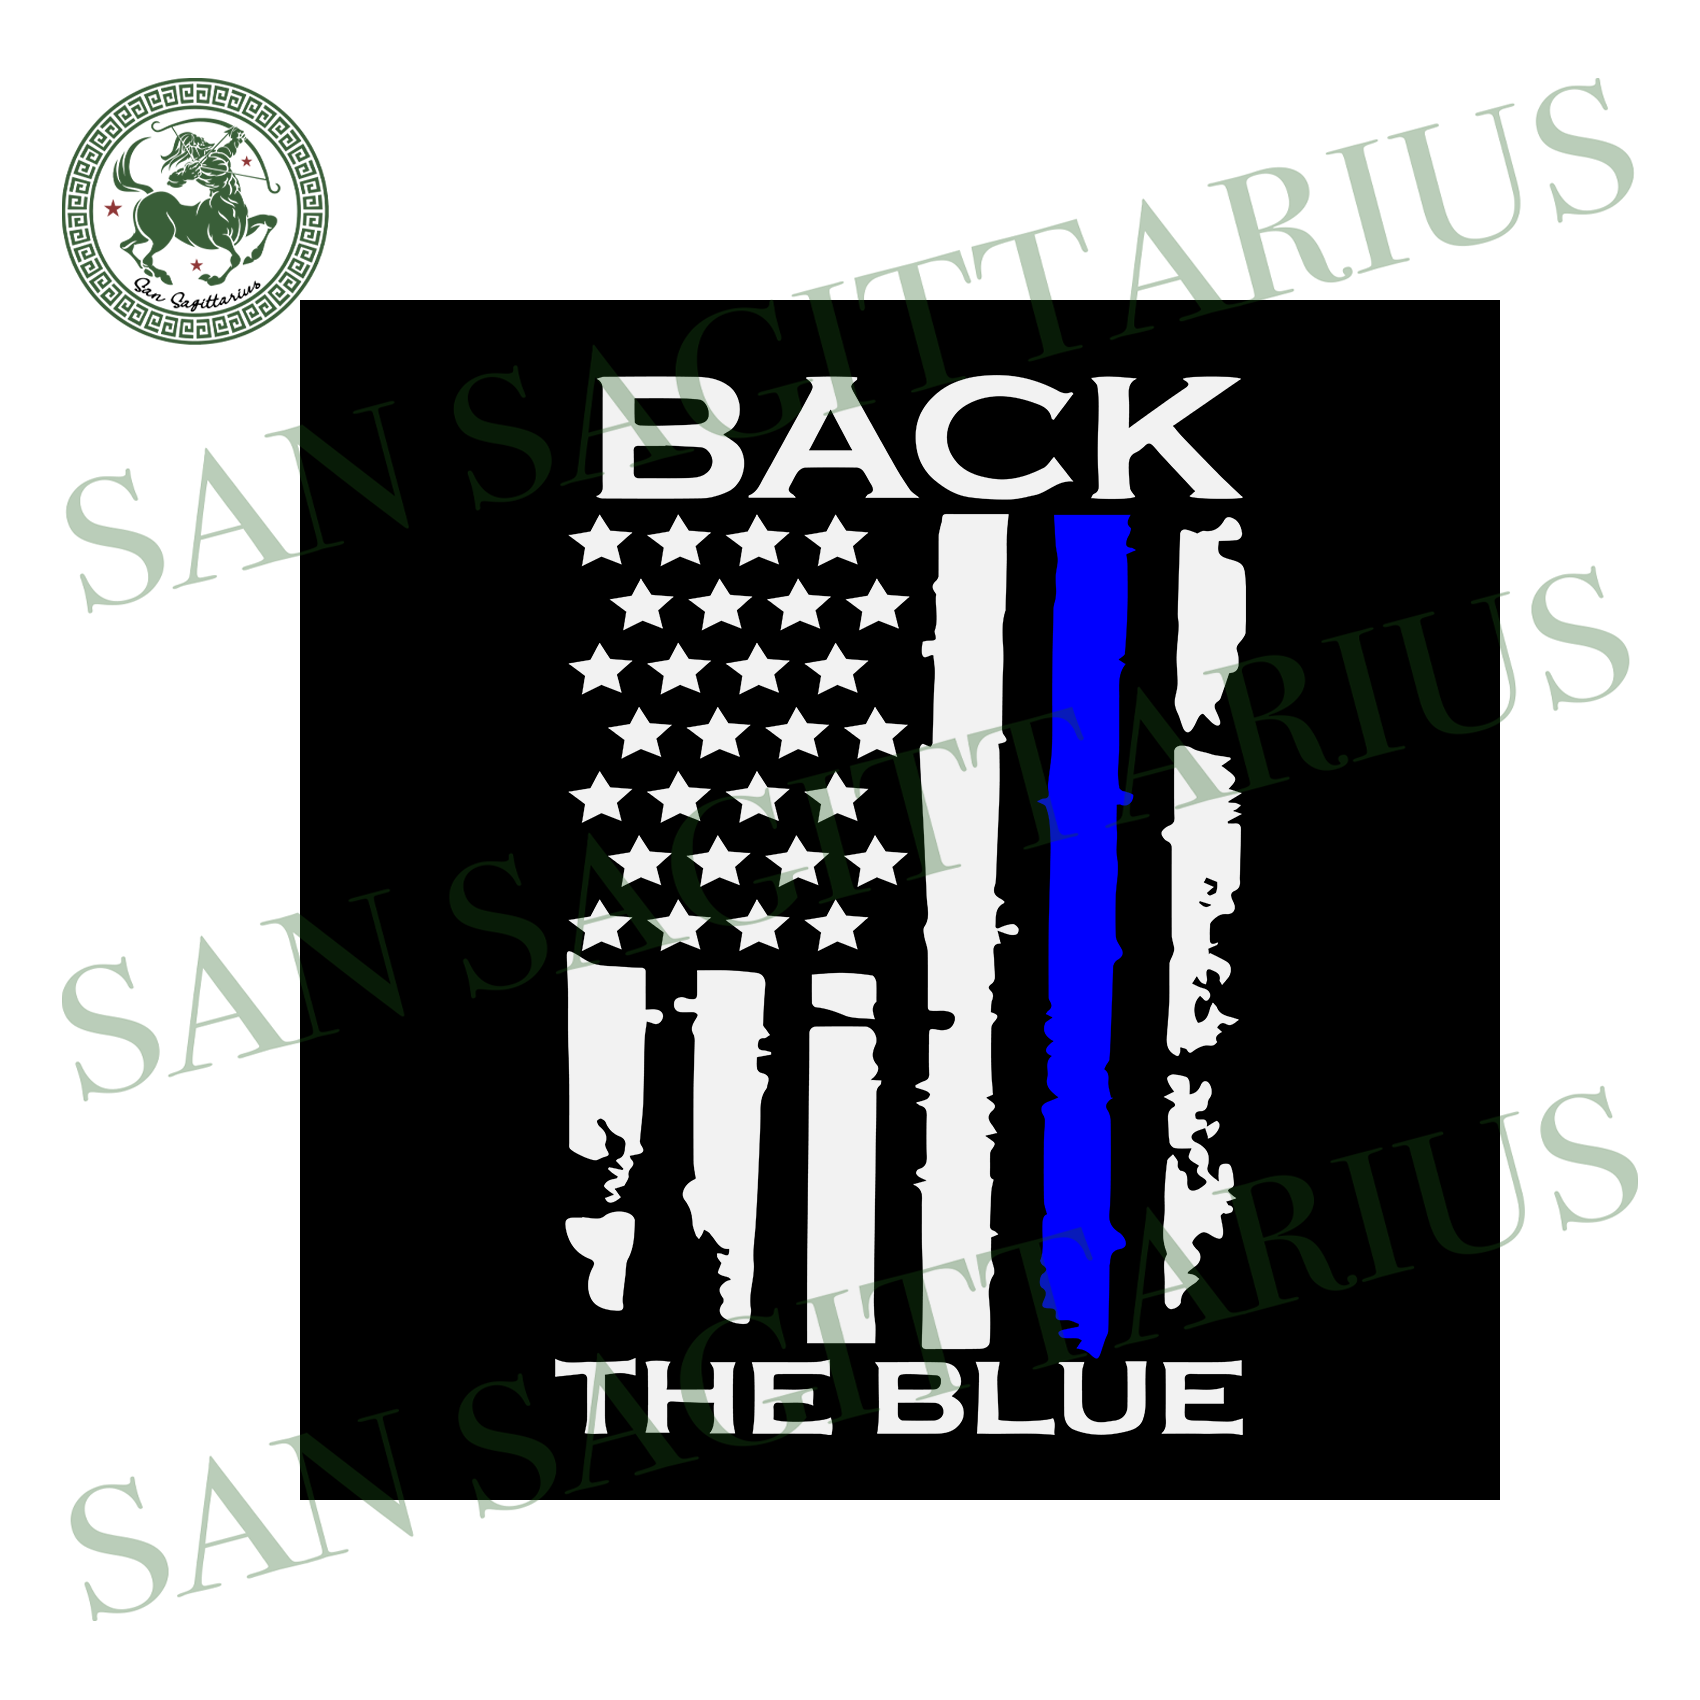 Black the blue flag svg,thin blue line svg,police svg,gun svg,back the blue svg,flag svg,blue lives matter svg,distressed svg,police blue line US flag svg,America flag svg,police support svg,